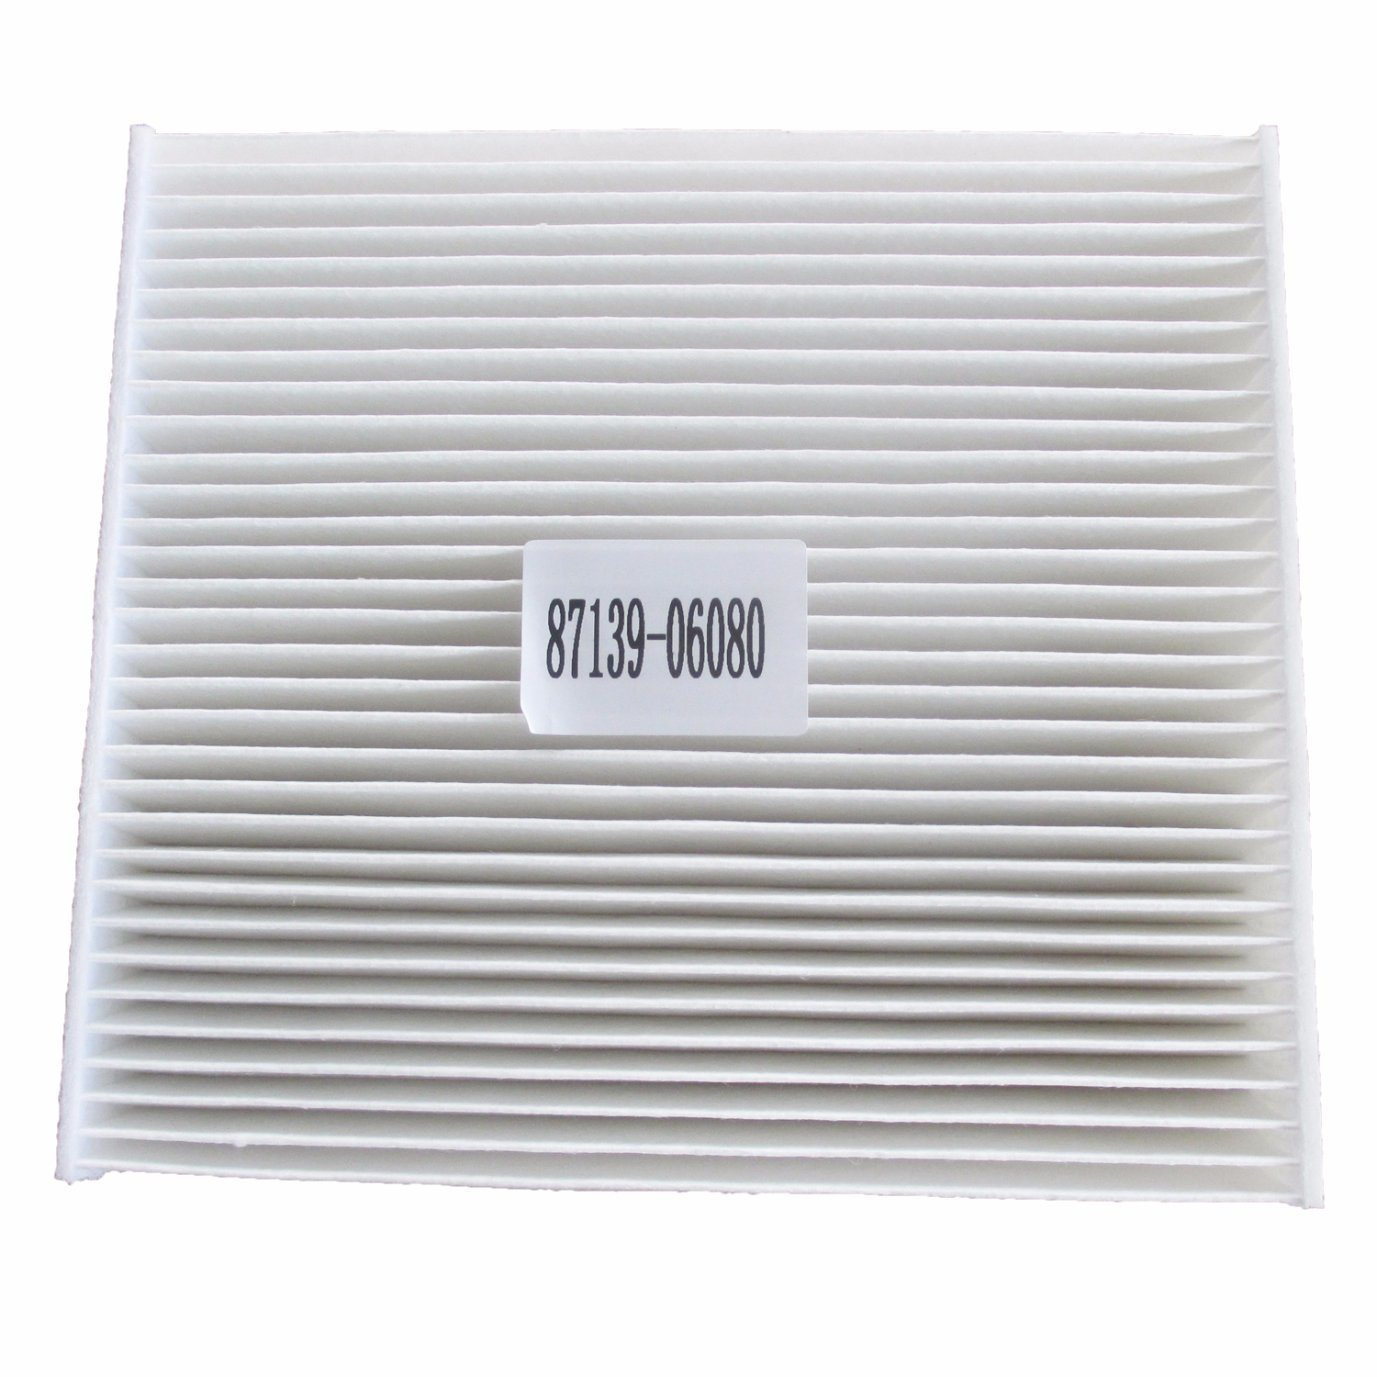 brock picture air toyota filter of cabins cabin exc sienna supply camry